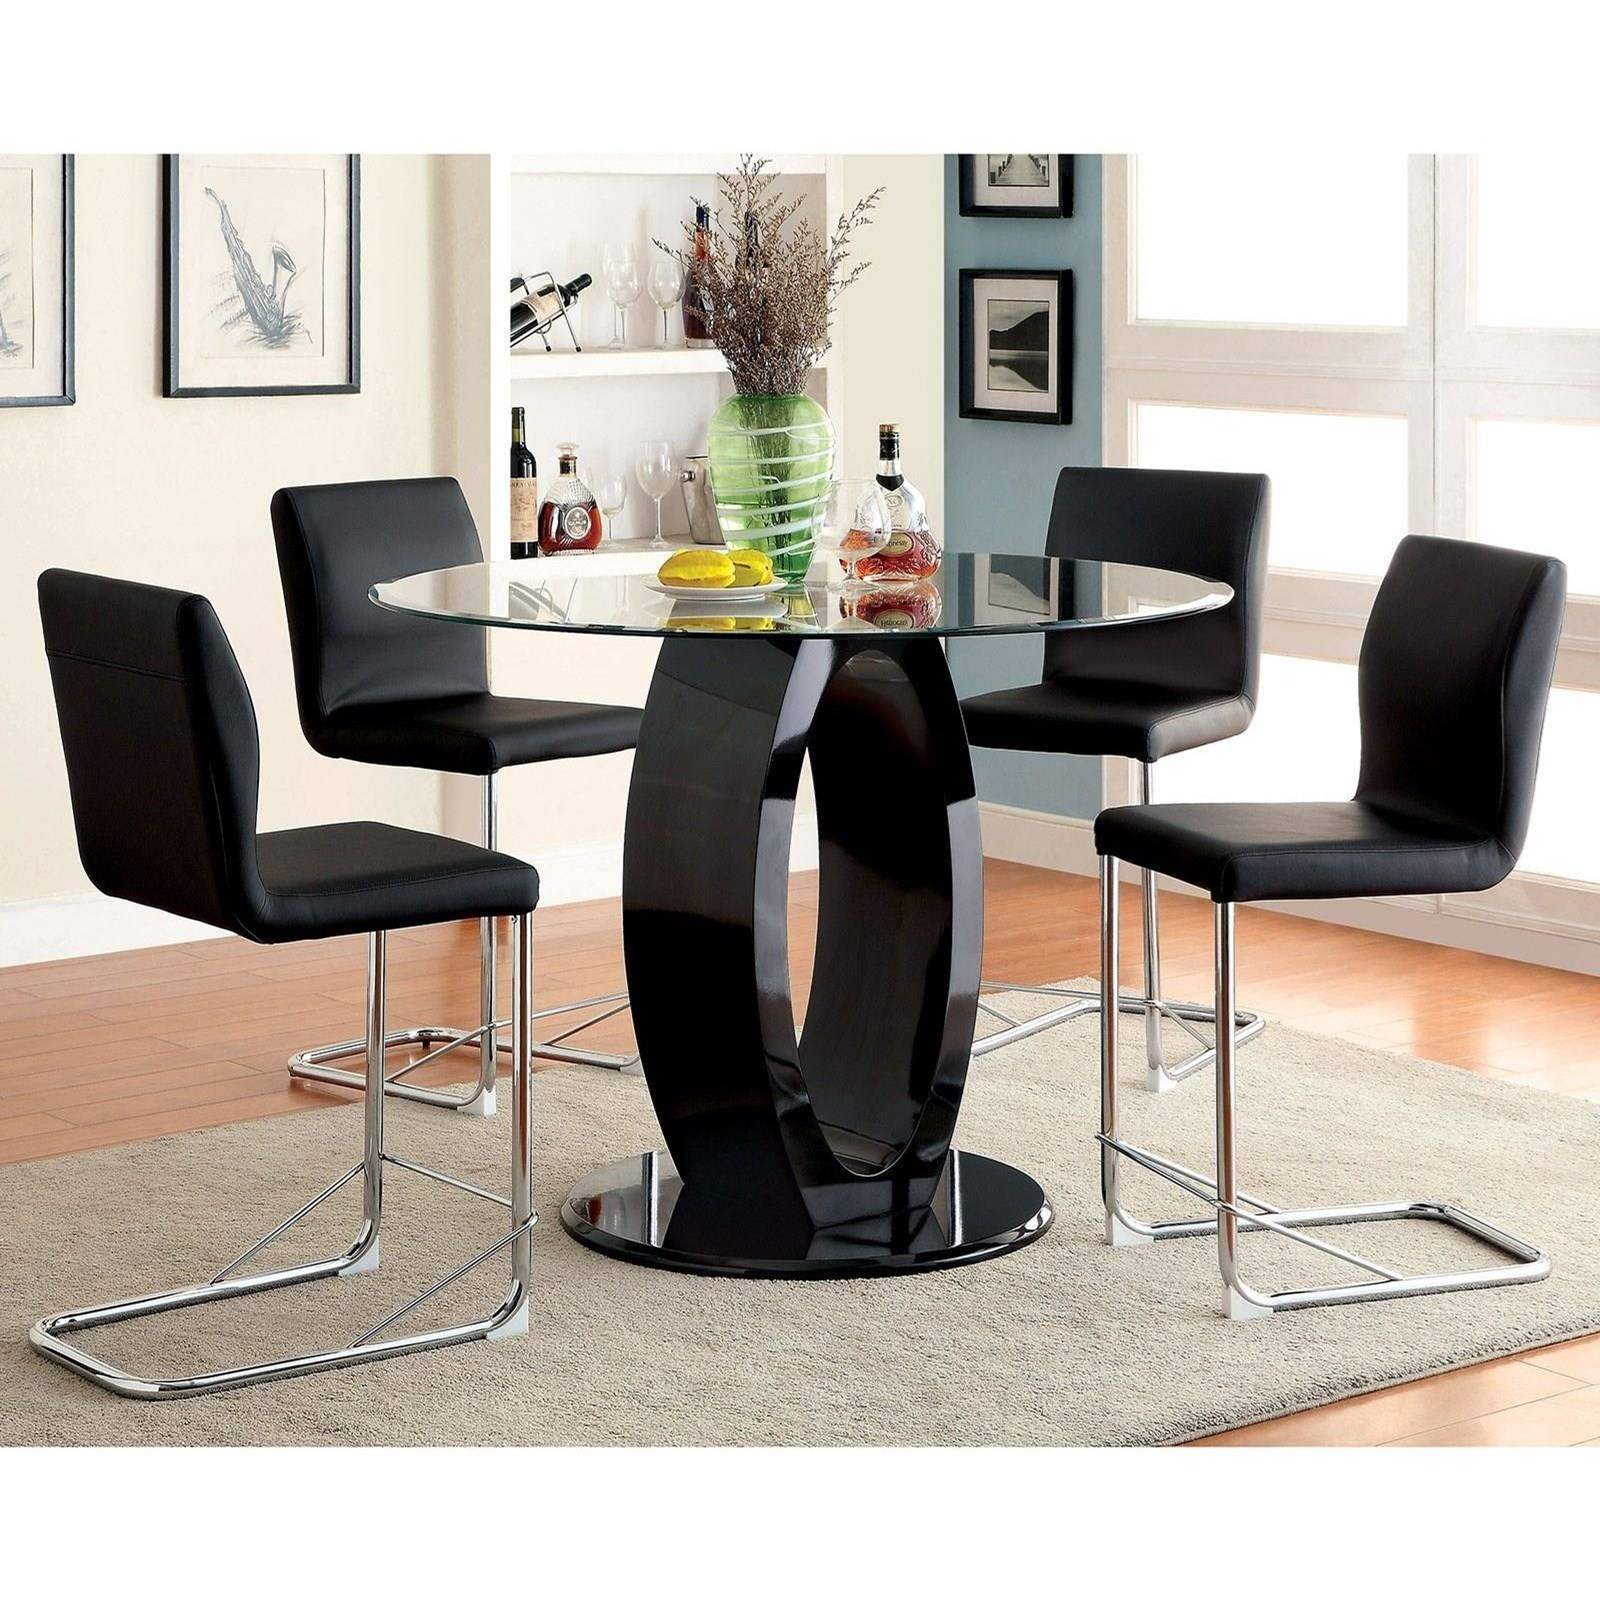 Lodia II Table and 4 Side Chairs at Household Furniture